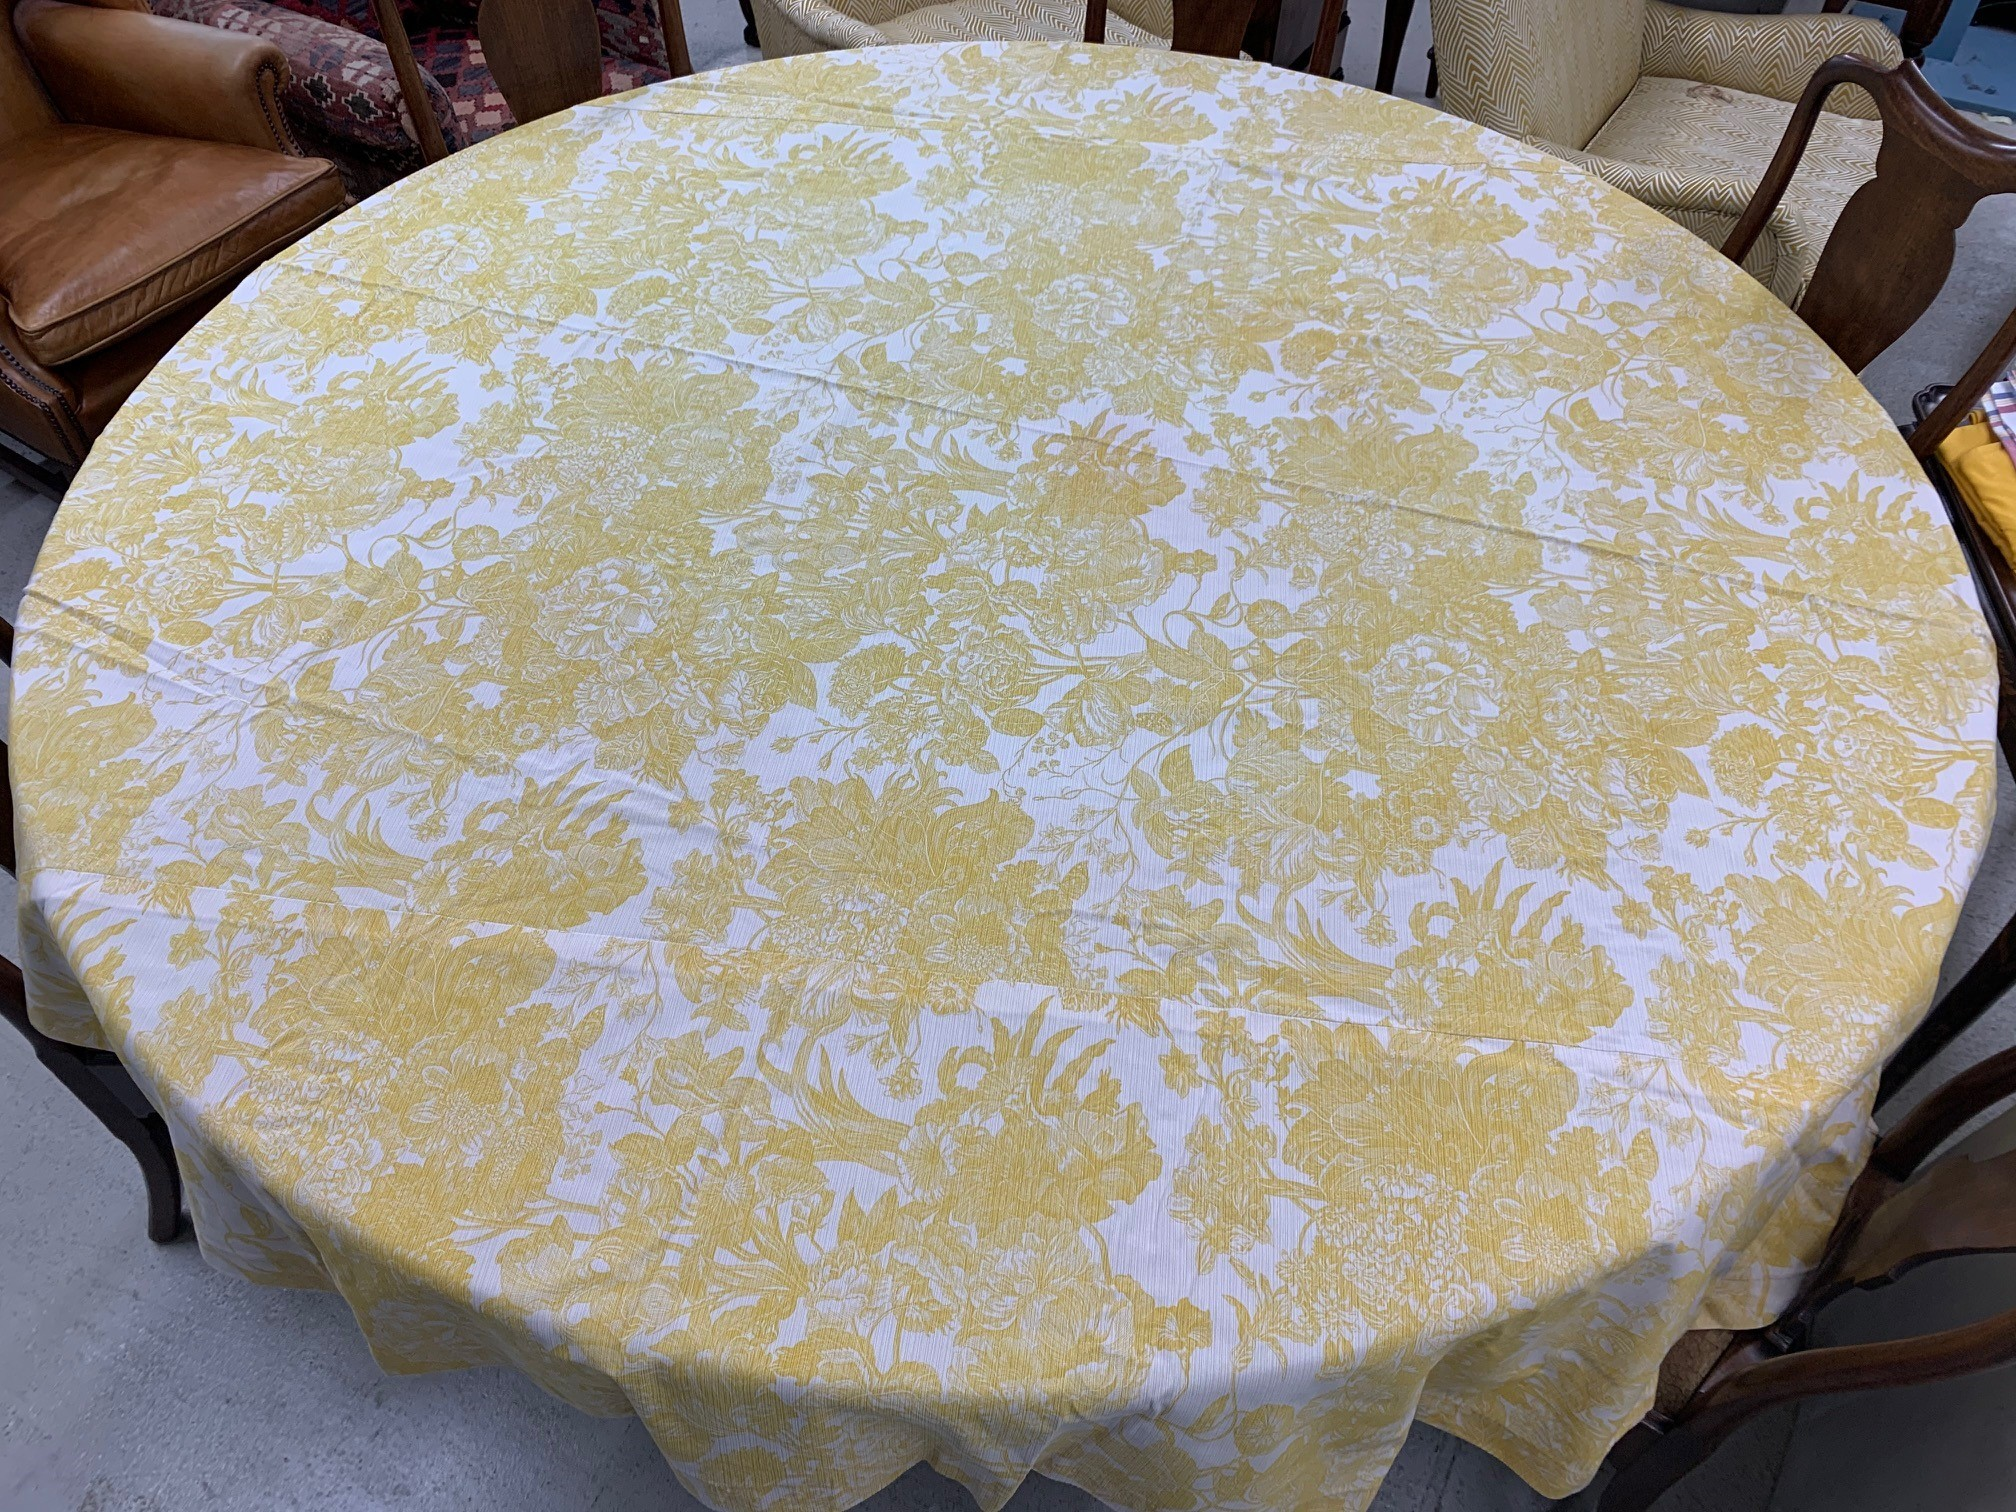 """Lined circular table cloth with yellow dragon designs, 84"""" diameter approx; with three other similar - Image 3 of 5"""